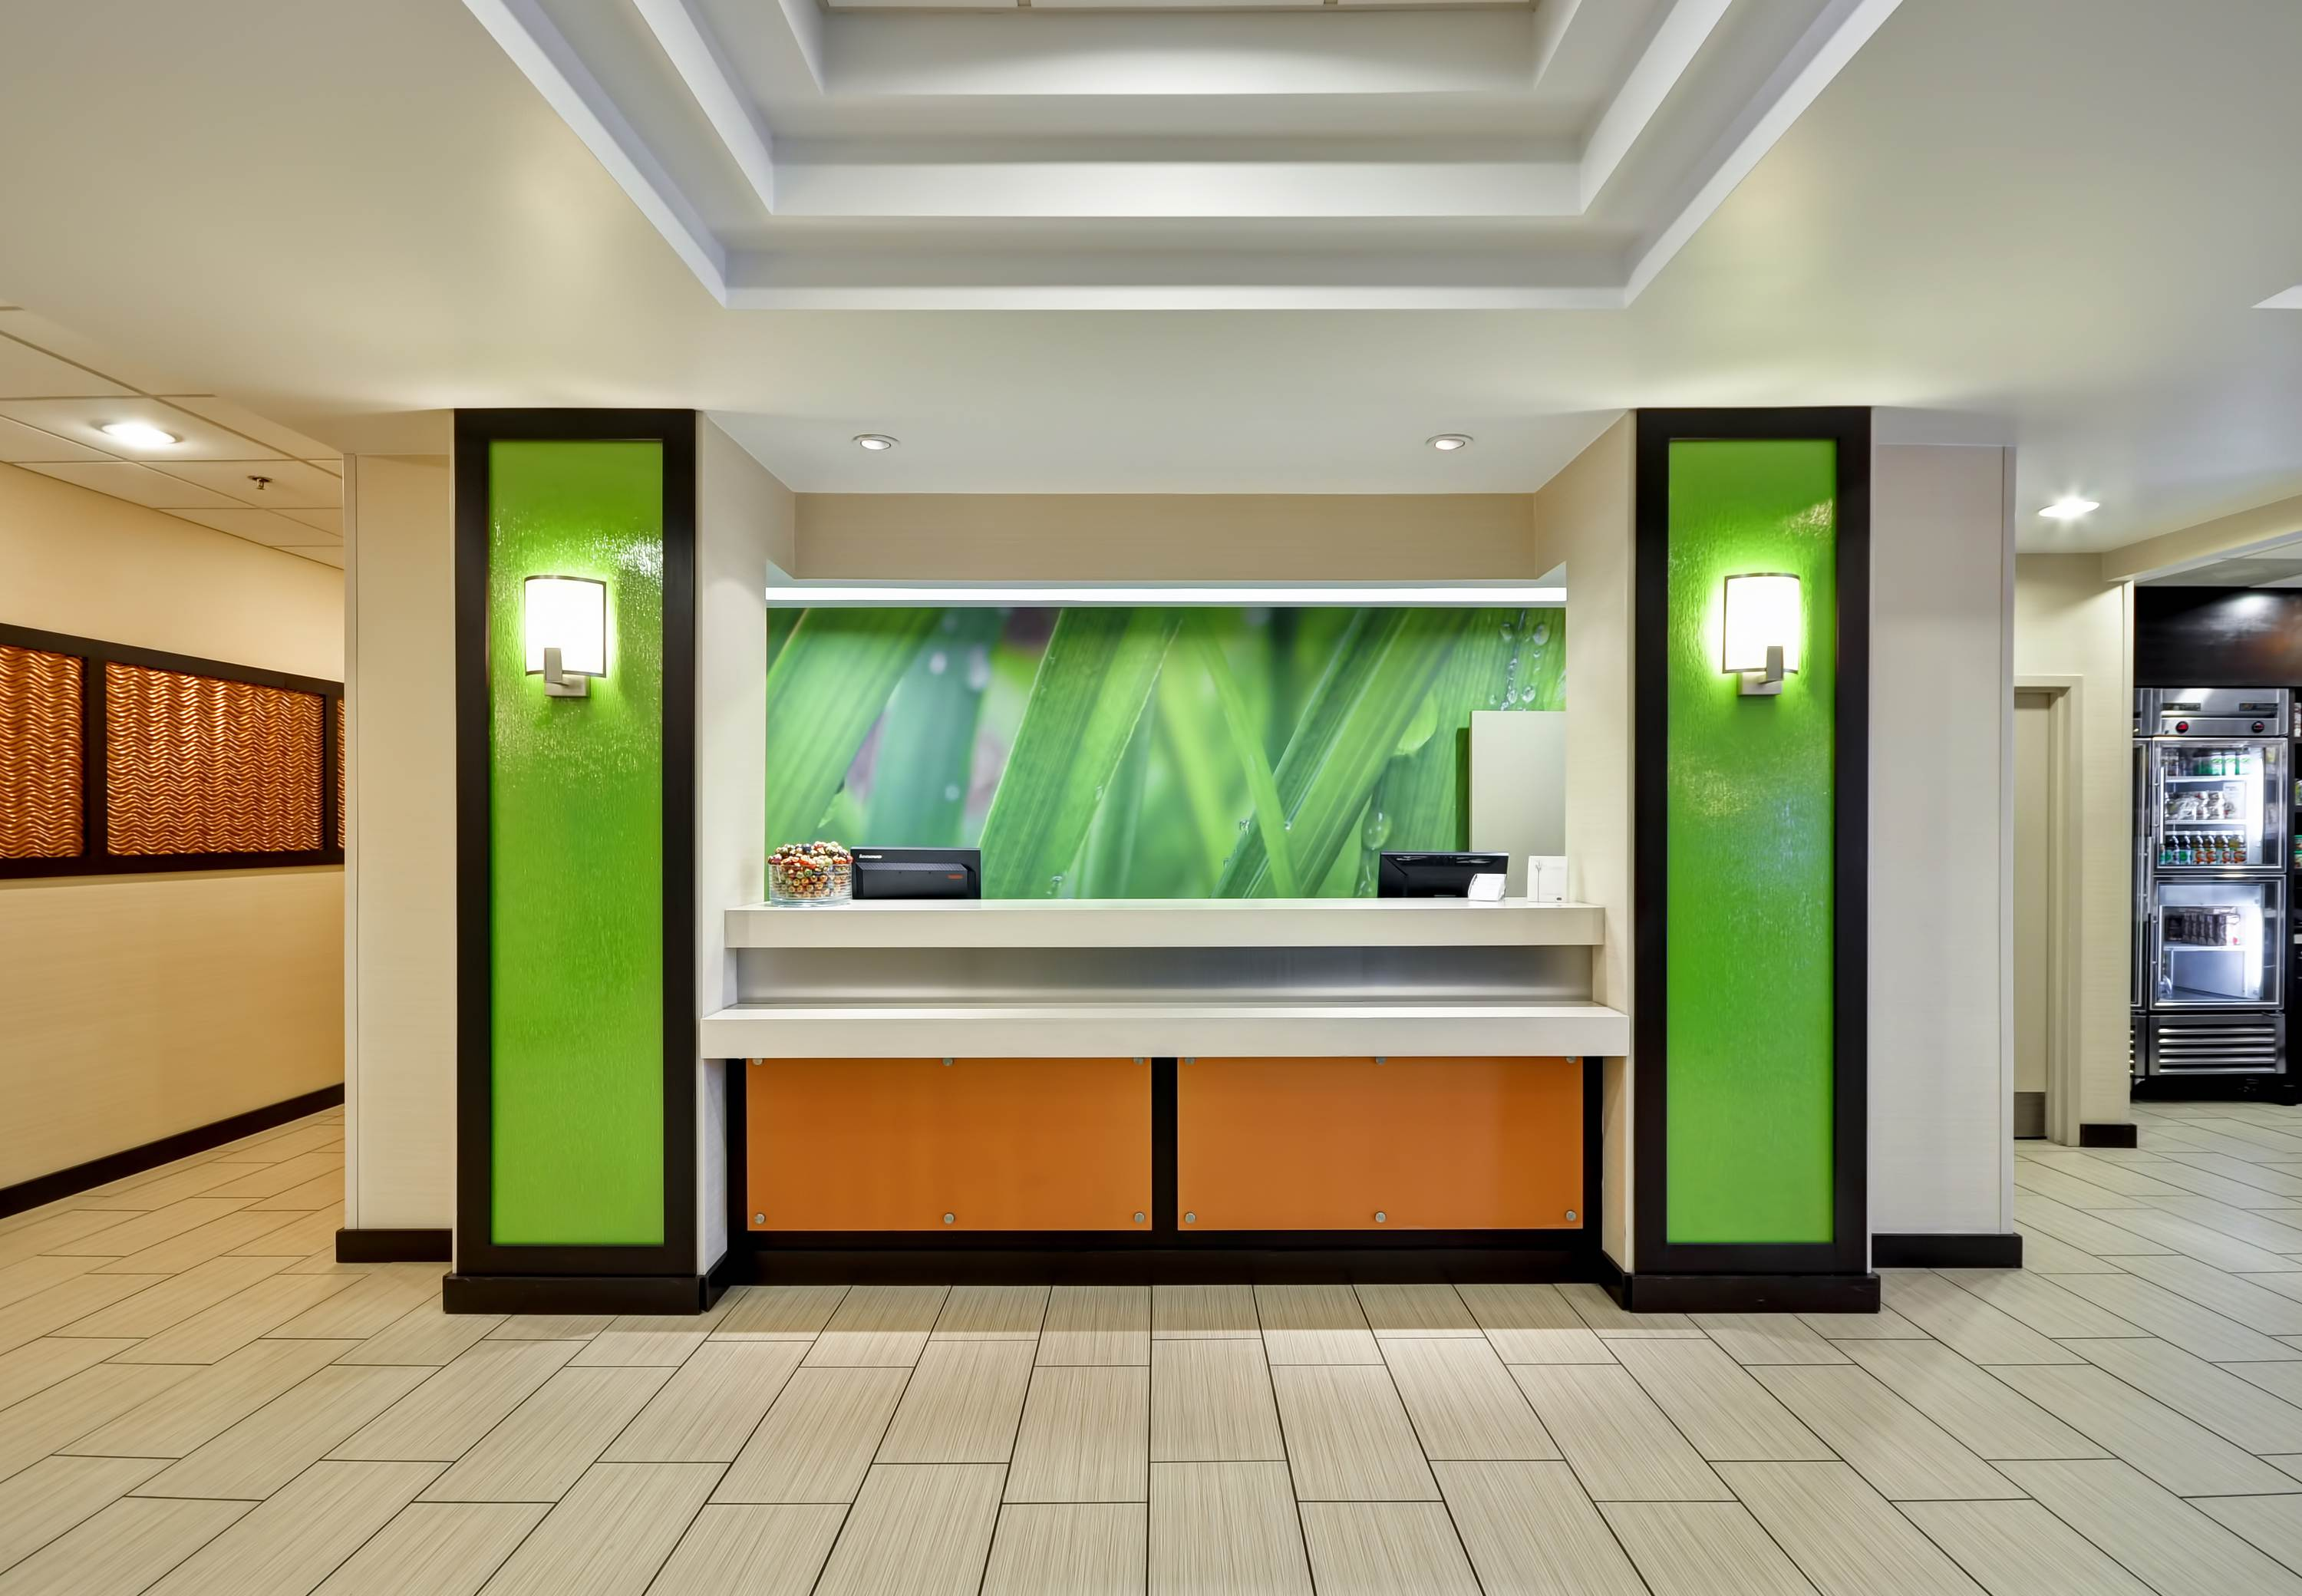 SpringHill Suites by Marriott Houston Hobby Airport image 1